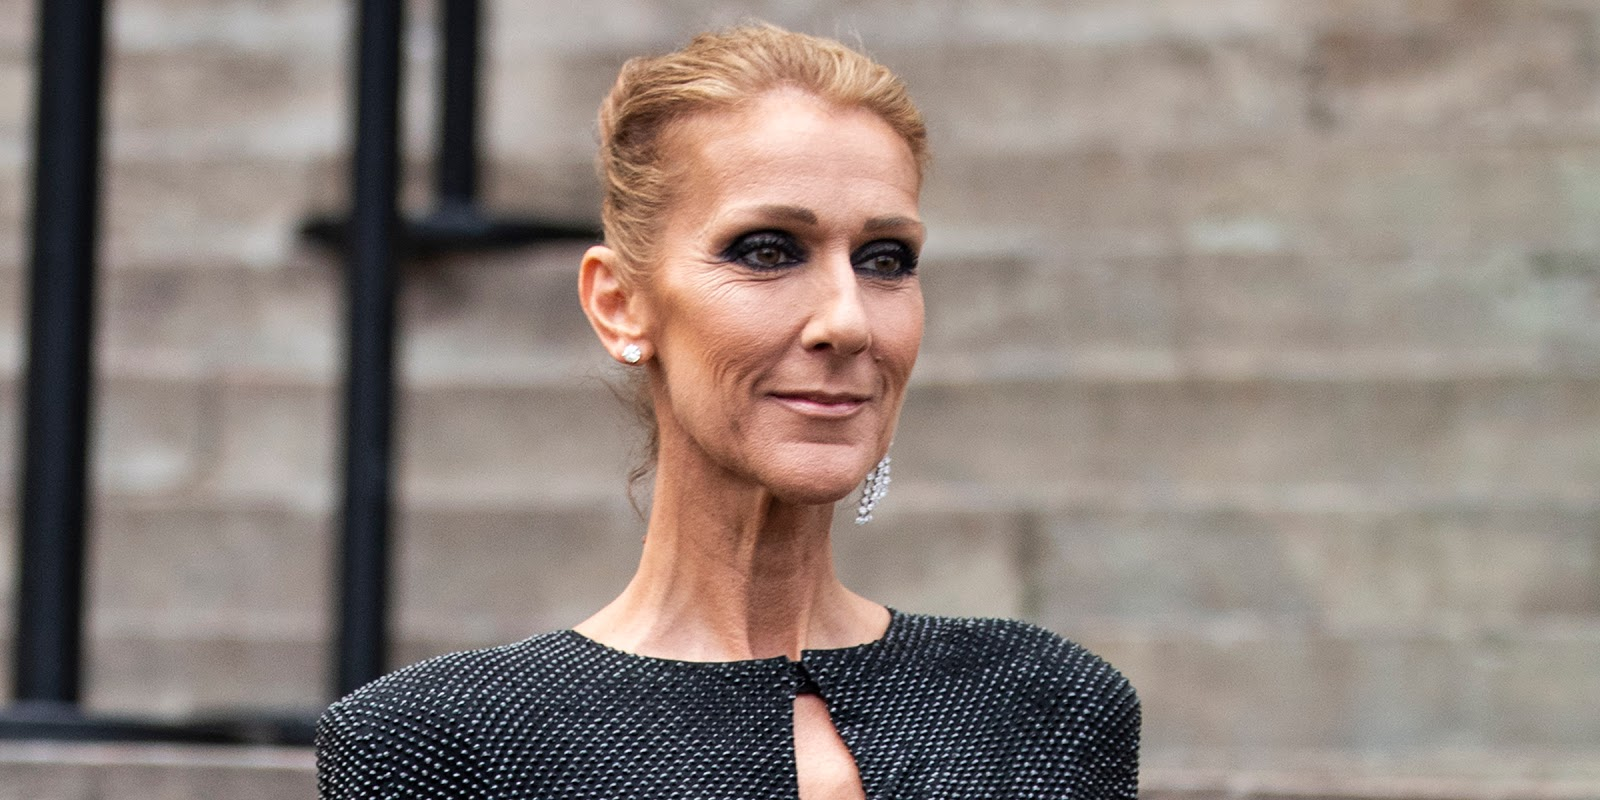 Celine Dion has a message for her critics and body shamers